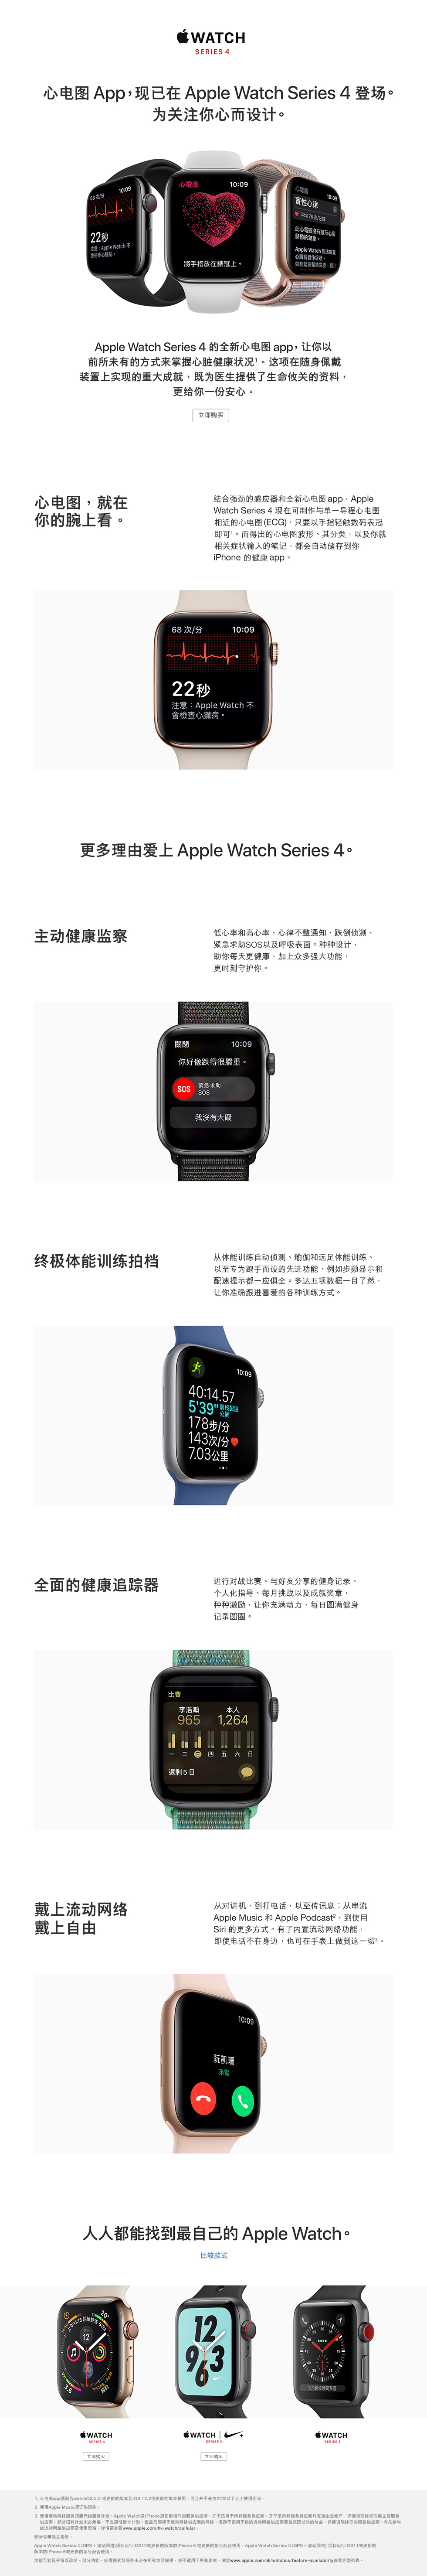 7468-AppleWatch-productpage980-sc